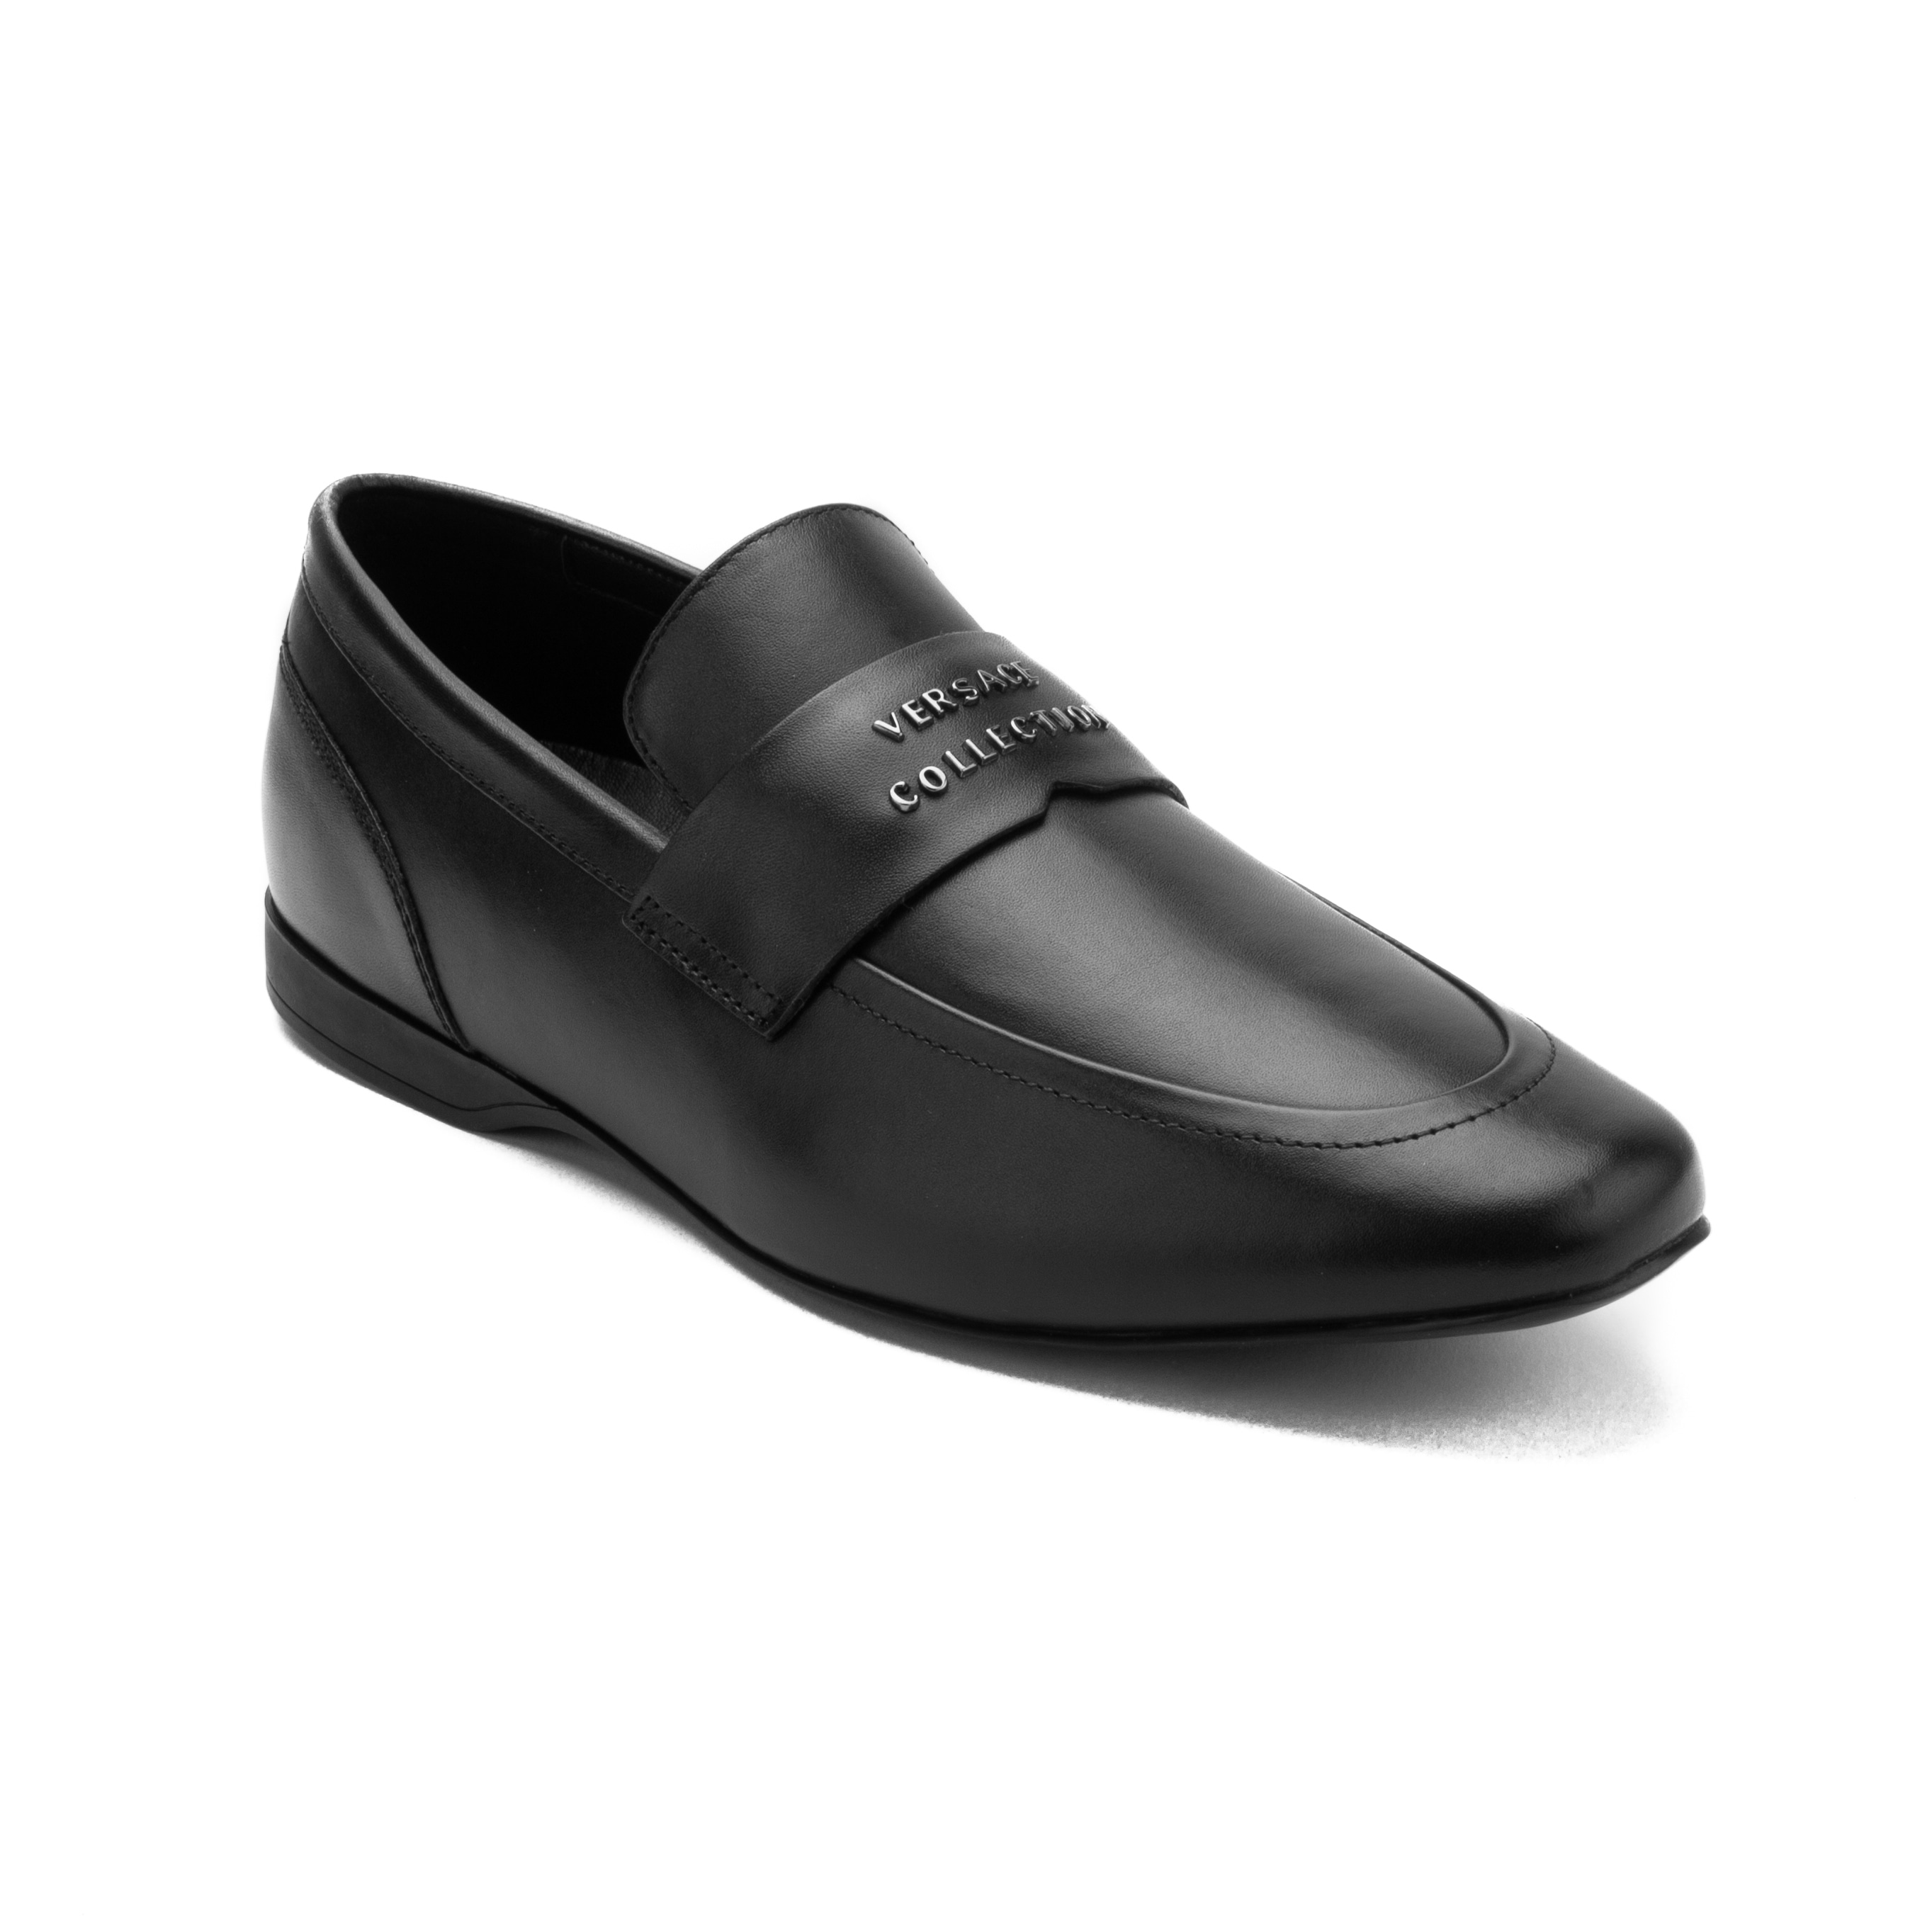 e5b5d542bfd Shop Versace Collection Men s Leather Penny Loafer Dress Shoes Black ...